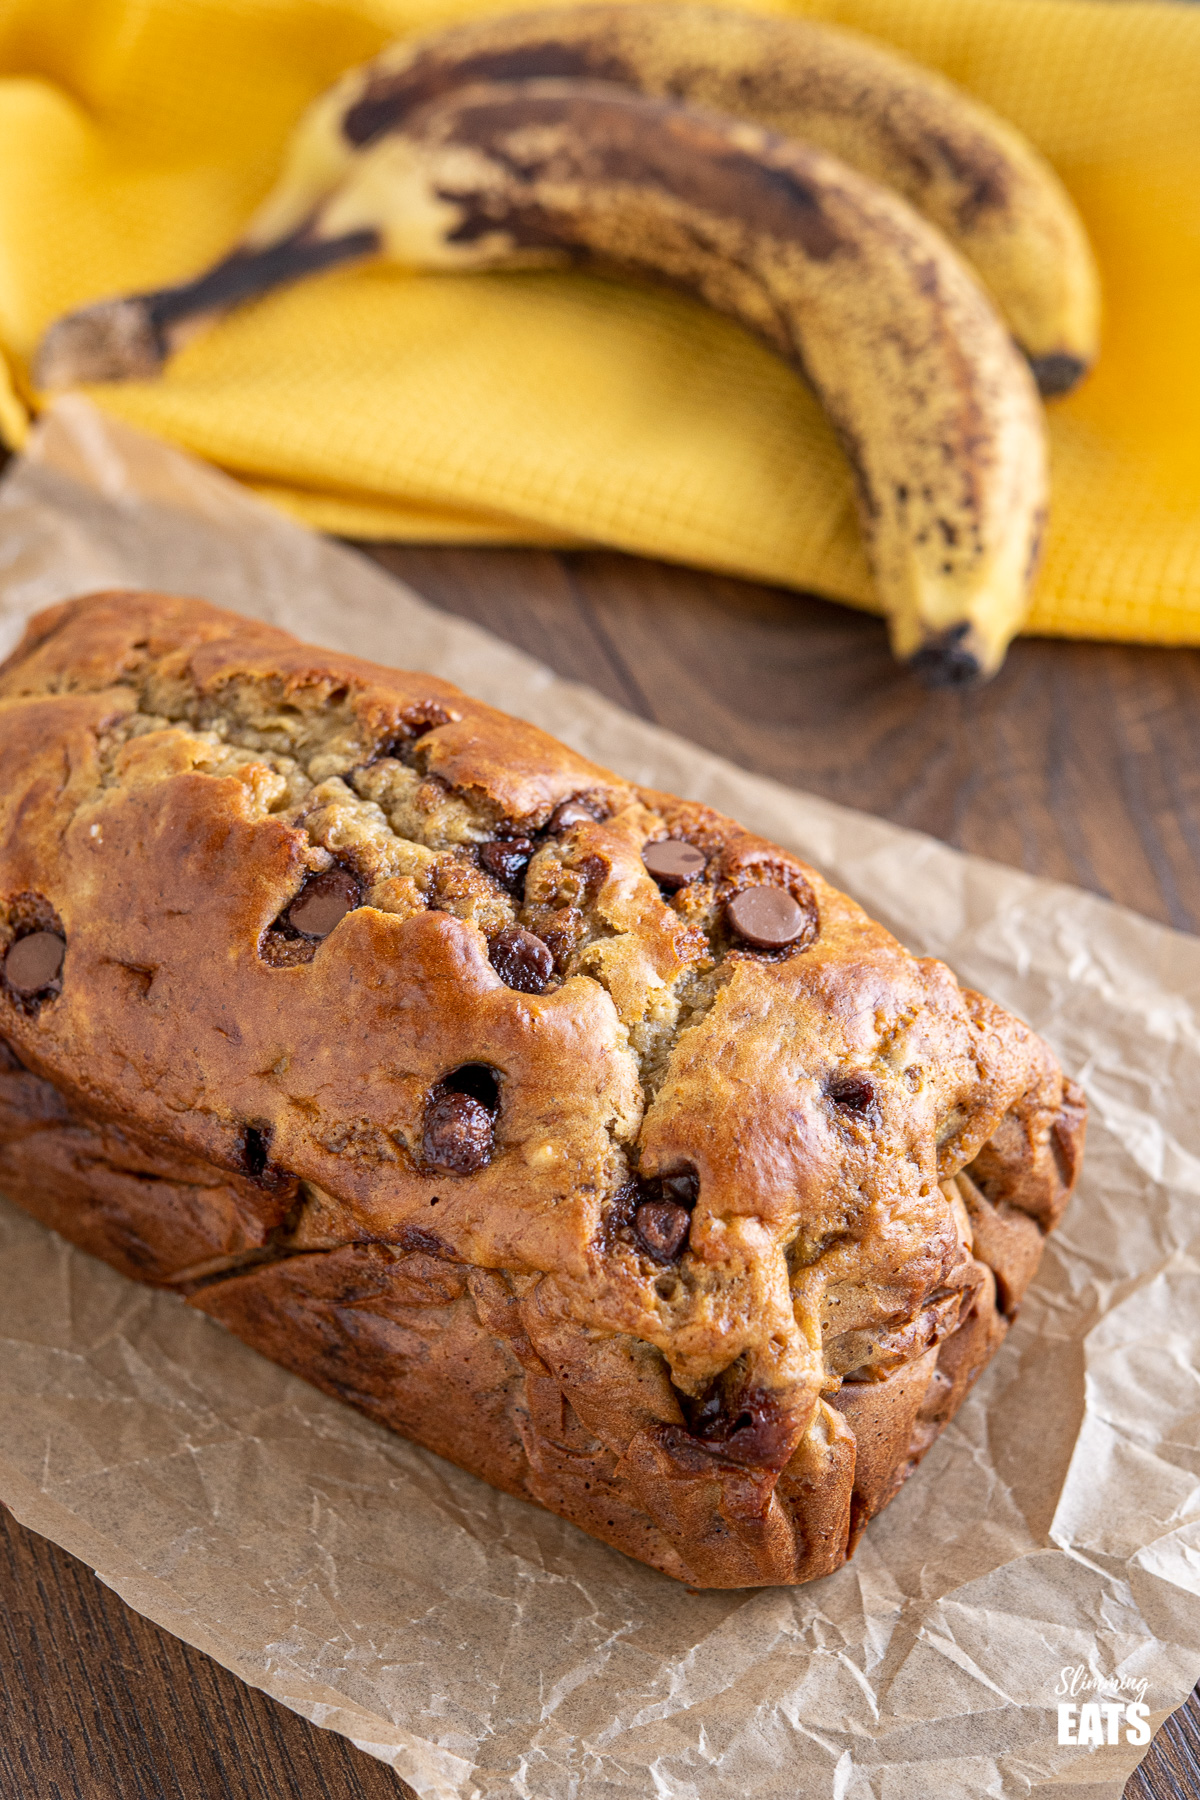 Healthy Banana and Chocolate Chip Loaf on parchment paper with ripe bananas in background on yellow tea towel